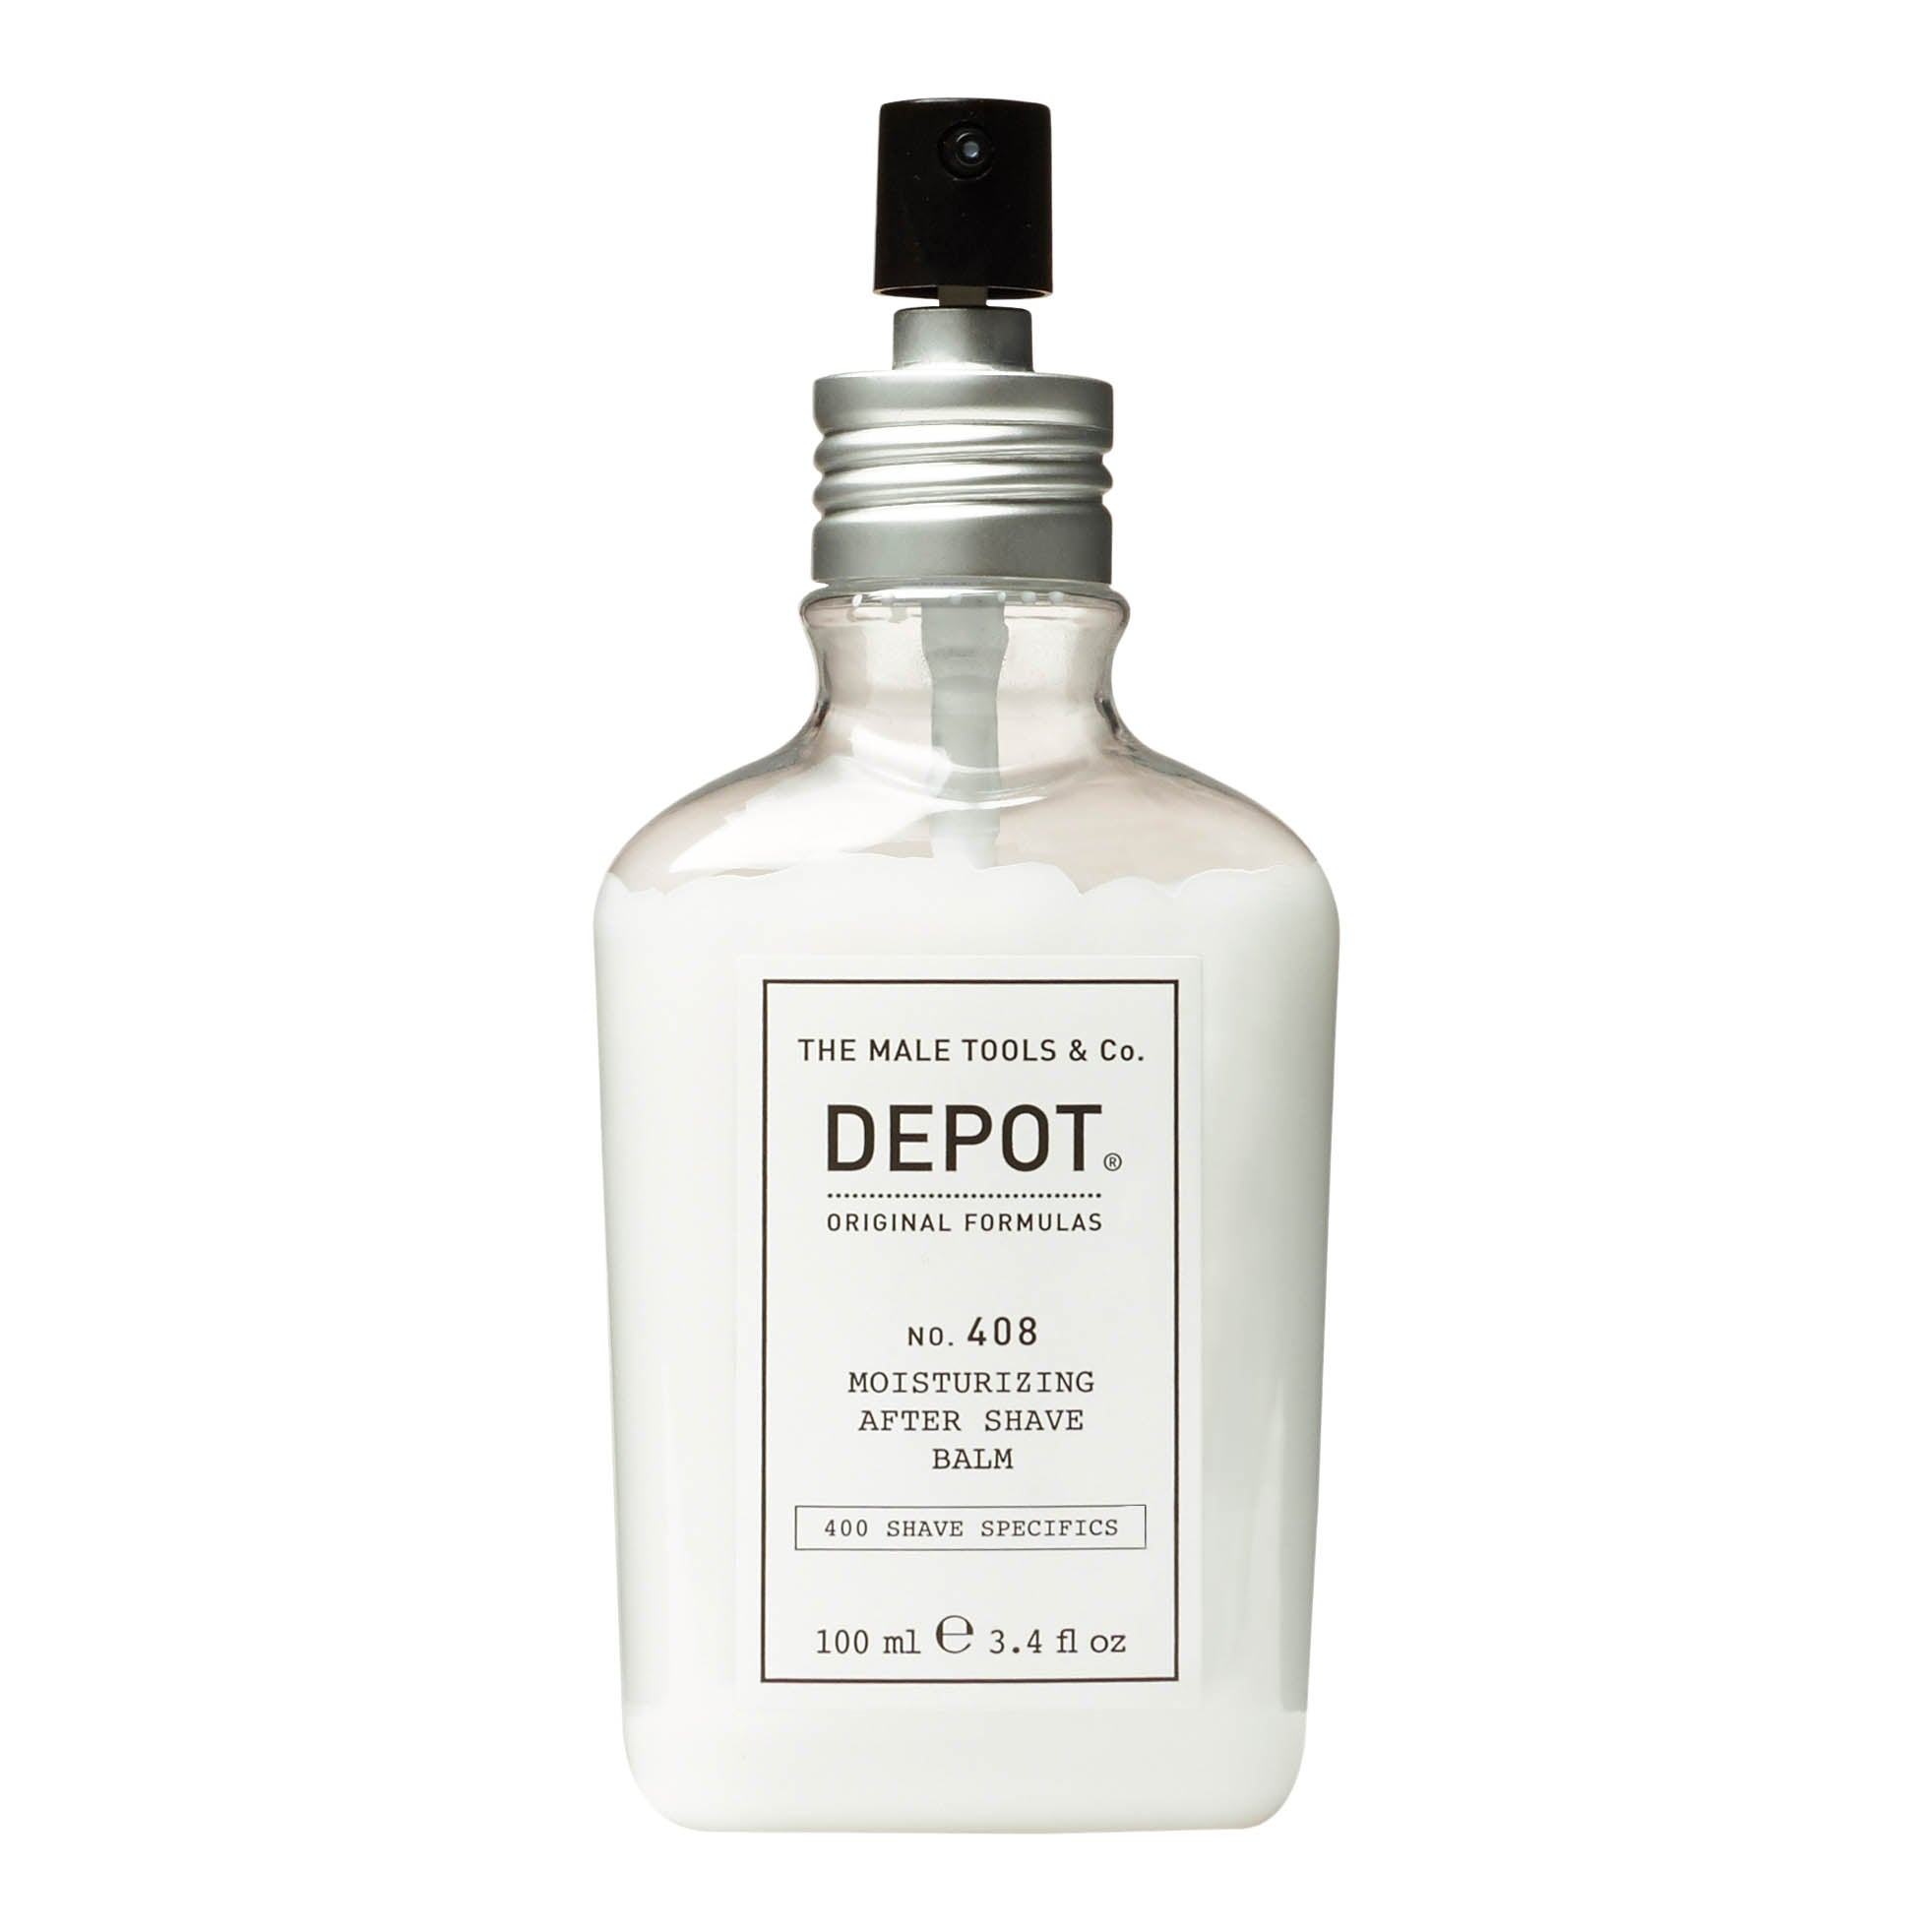 Depot No. 408 Moisturizing After Shave Balm - Classic Cologne